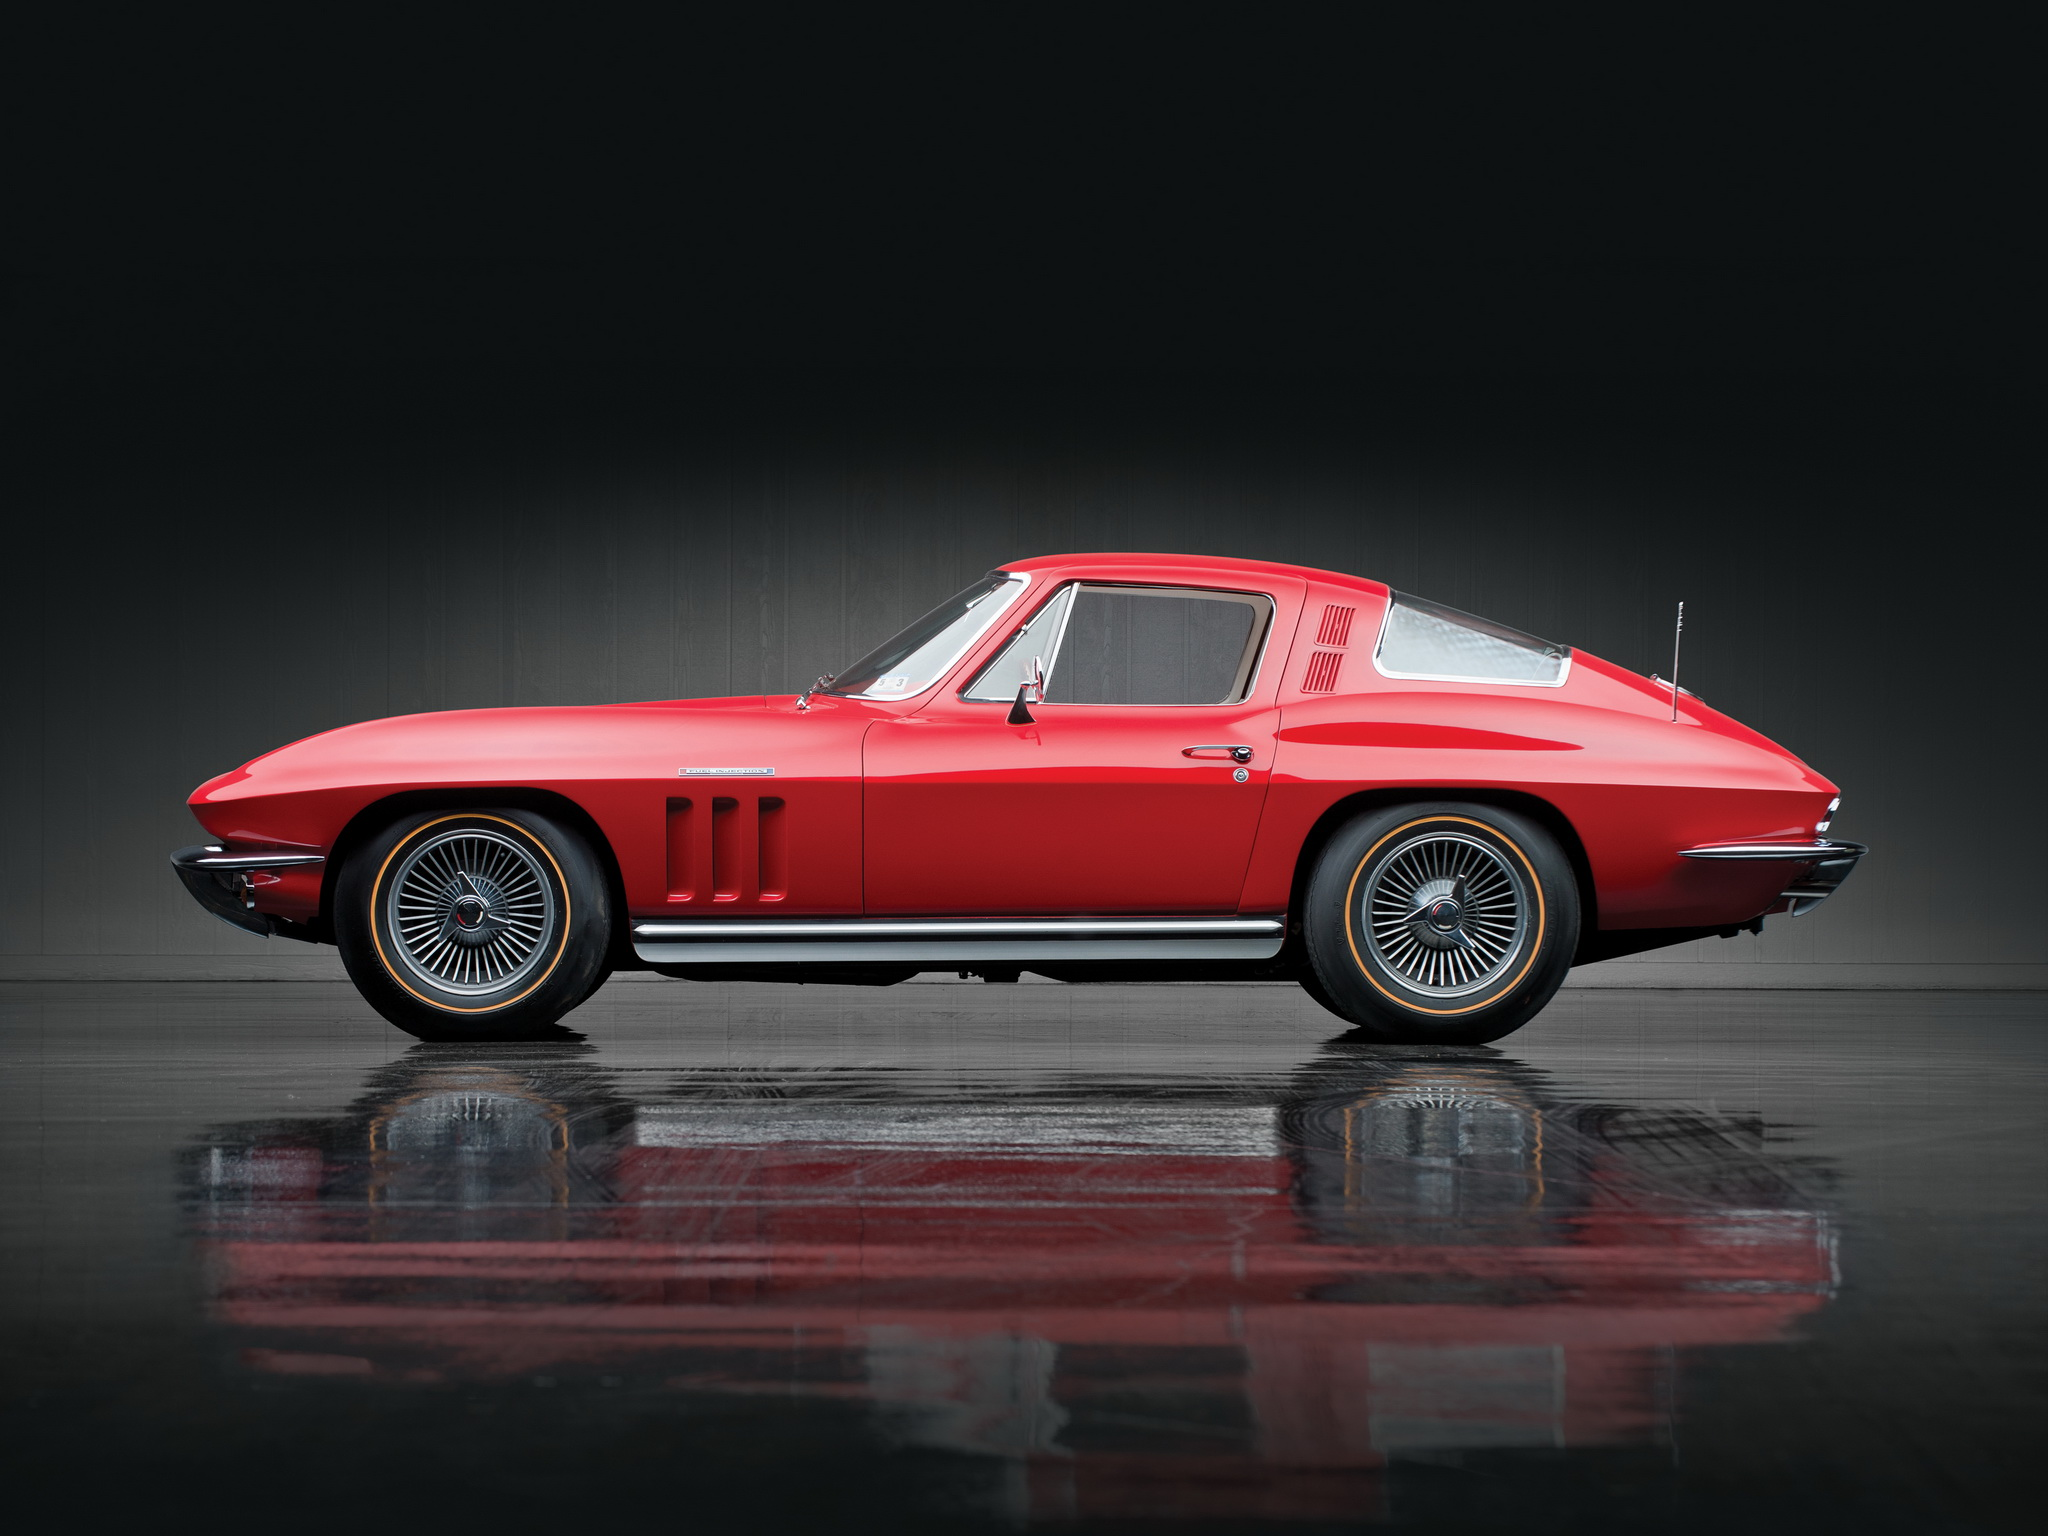 1965 chevrolet corvette sting ray l84 327 fuel injection c 2. Cars Review. Best American Auto & Cars Review